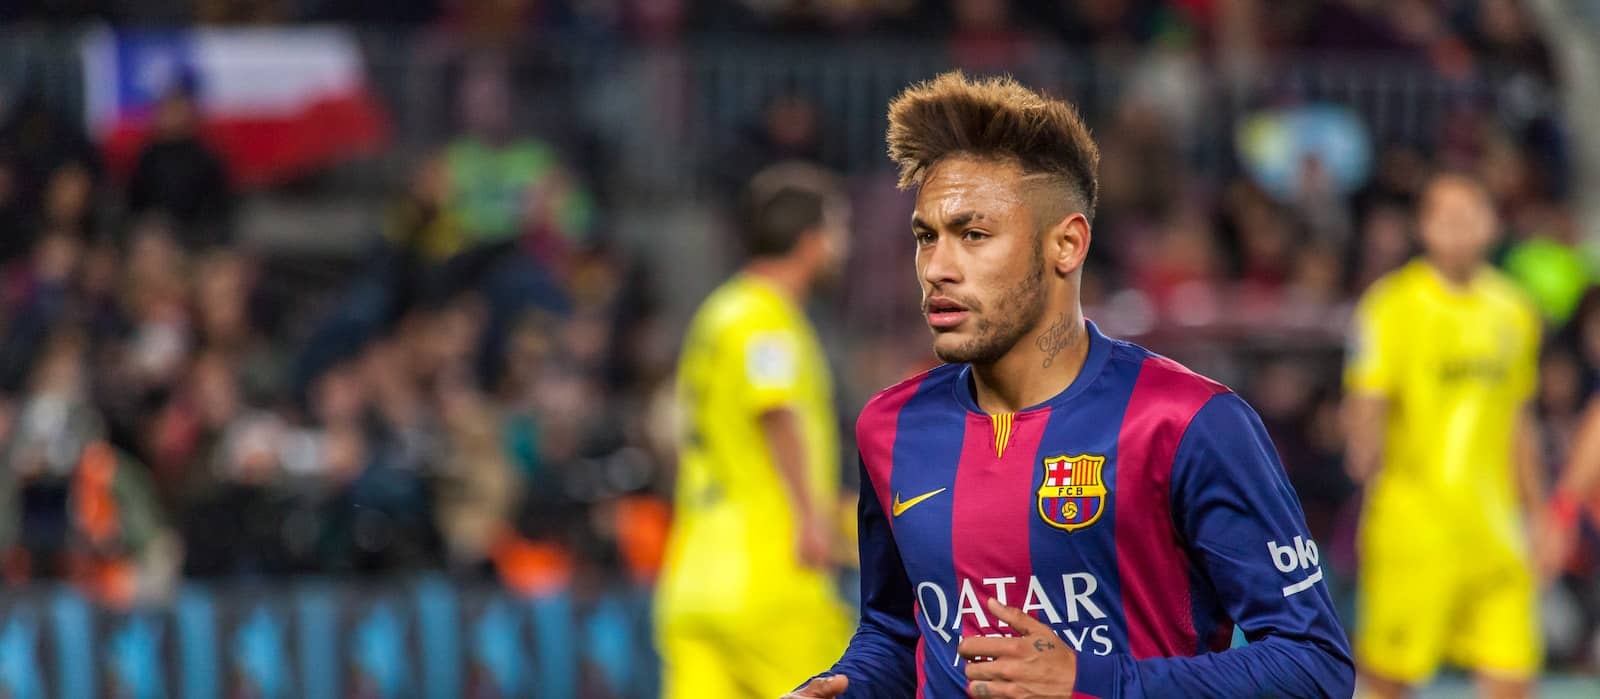 Neymar closer to Manchester United move than Real Madrid – report